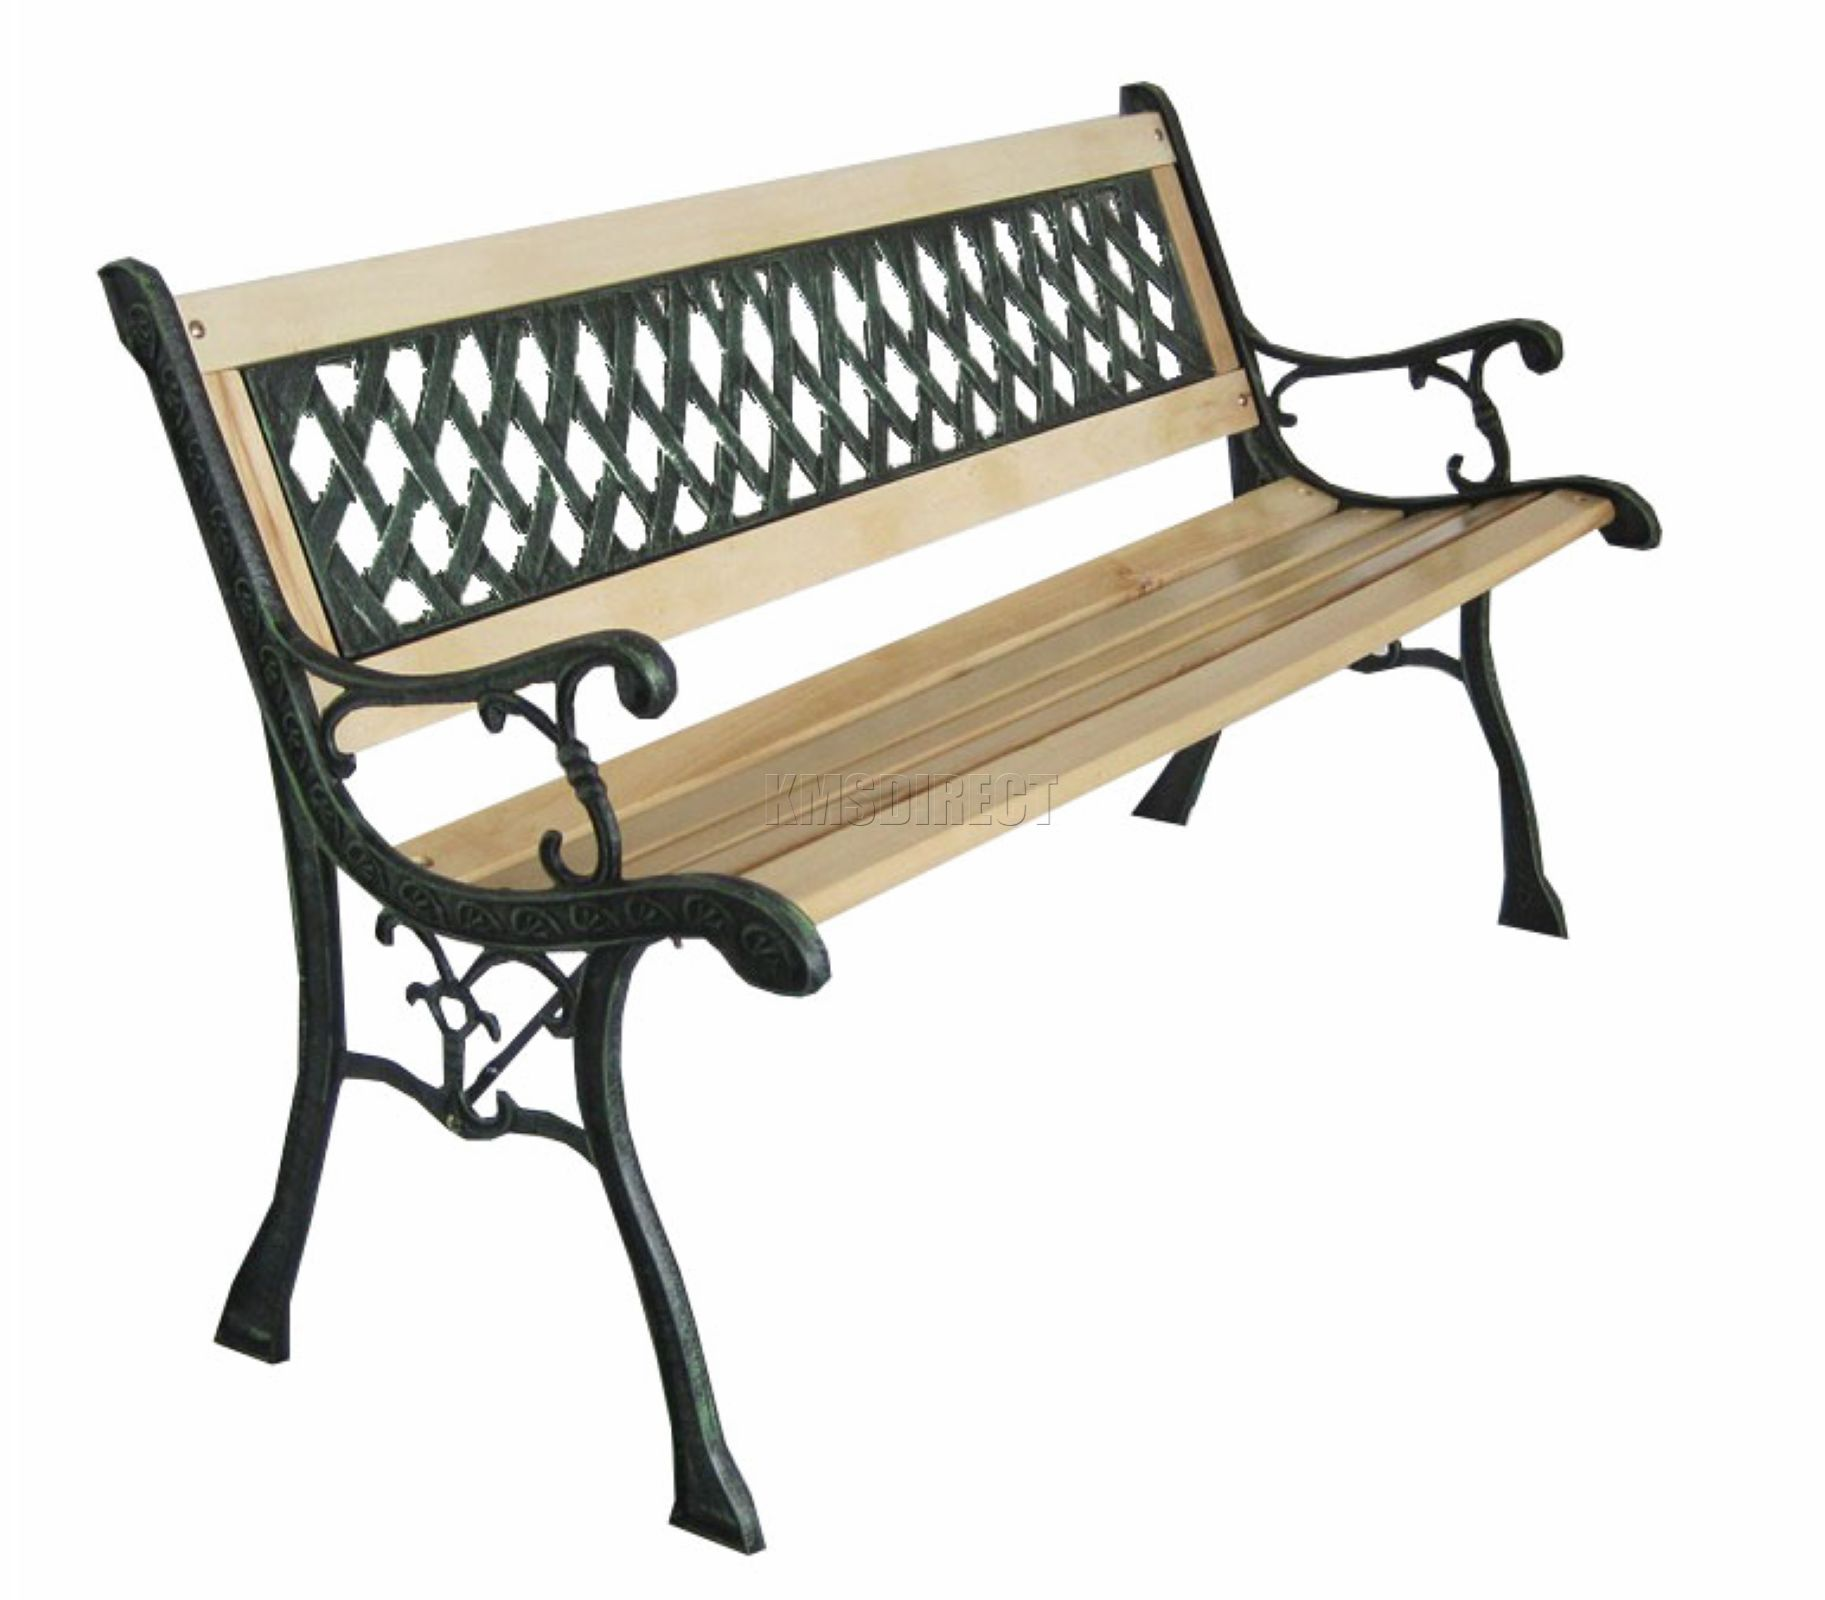 Cast Iron Table Legs For Sale: WestWood 3 Seater Outdoor Wooden Garden Bench Cast Iron